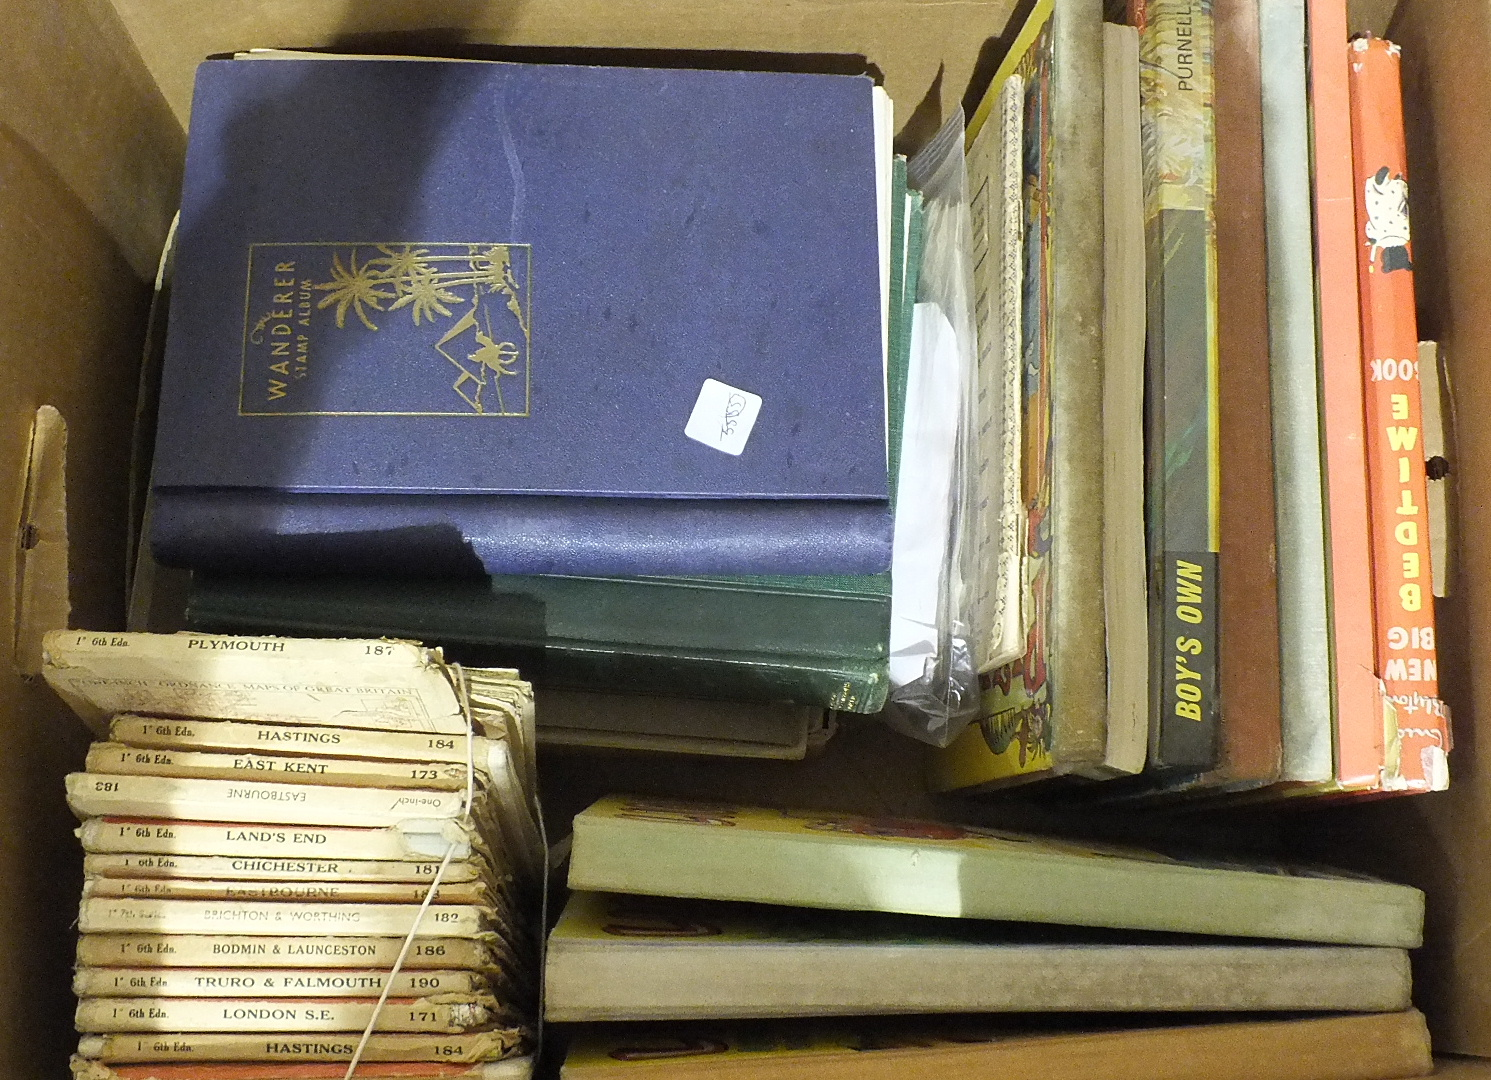 Lot 139 - A collection of British and world postage stamps in two albums, various cigarette and trade cards,